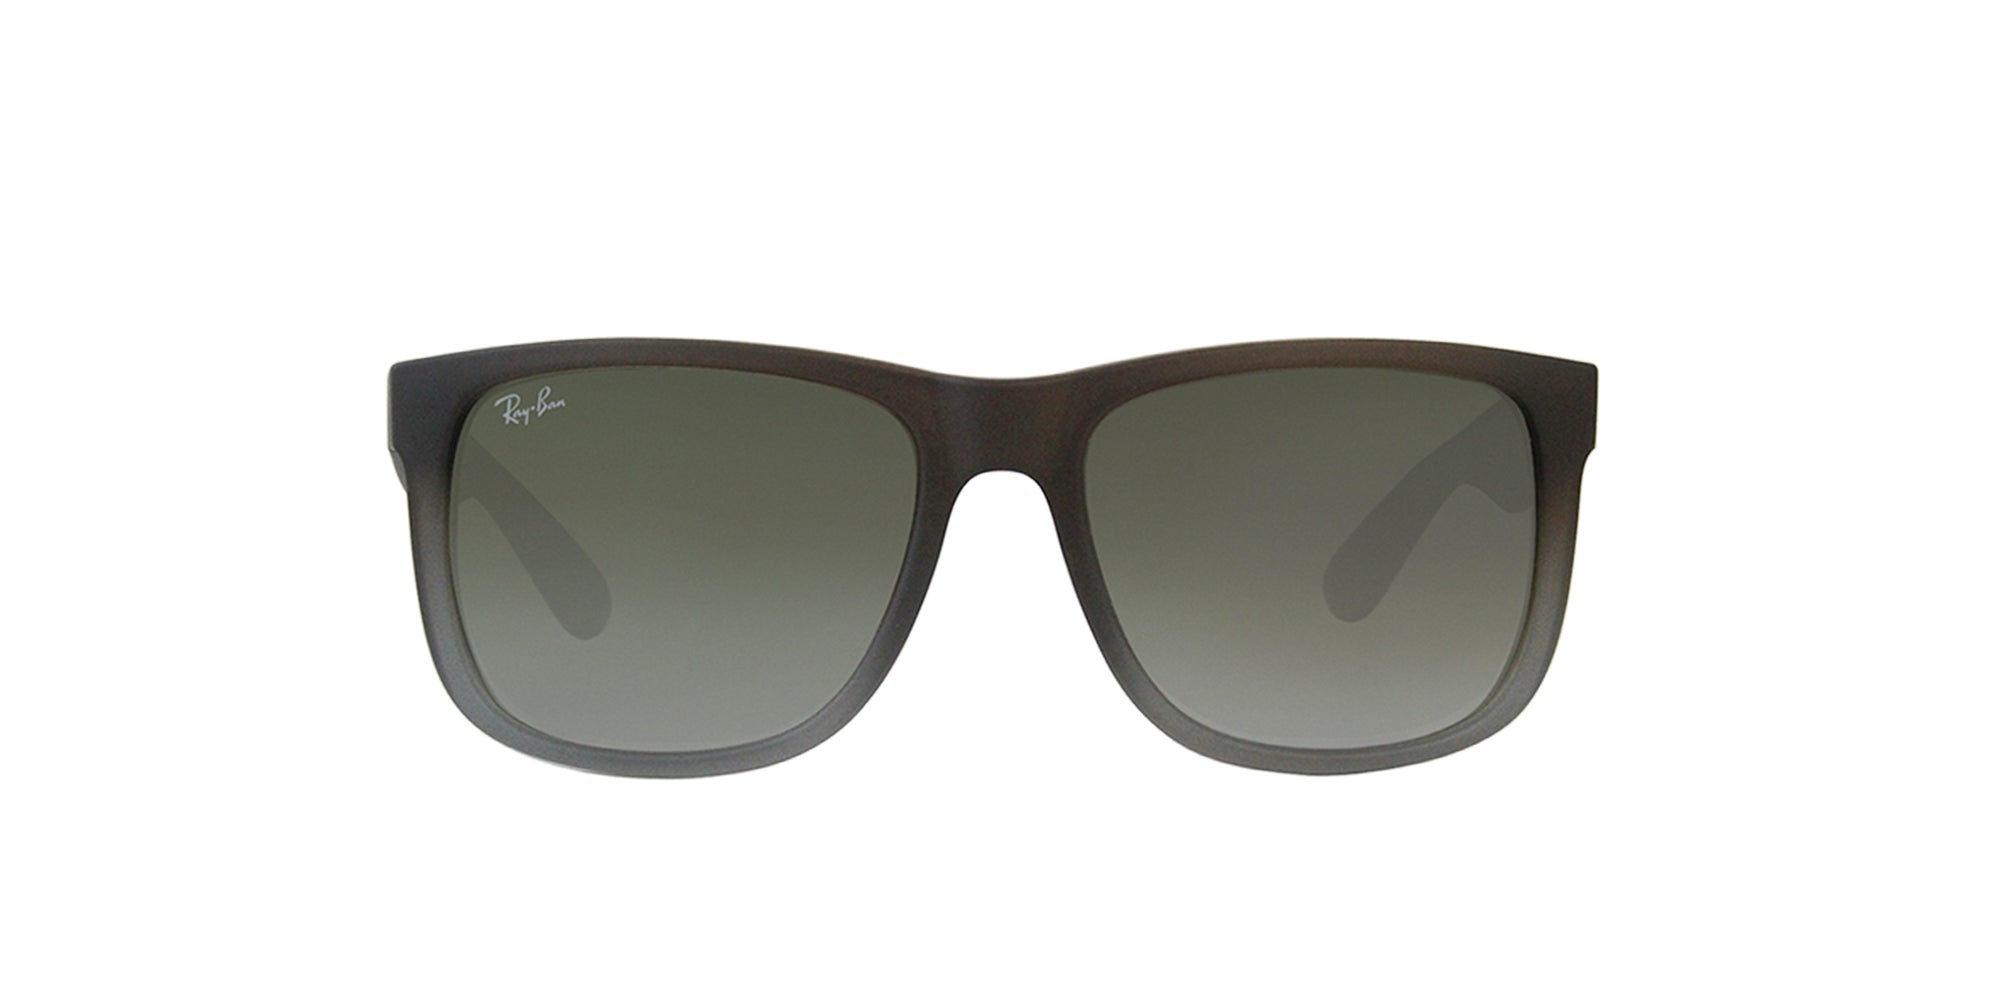 Ray Ban - Justin Brown Rectangular Unisex Sunglasses - 54mm-Sunglasses-Designer Eyes